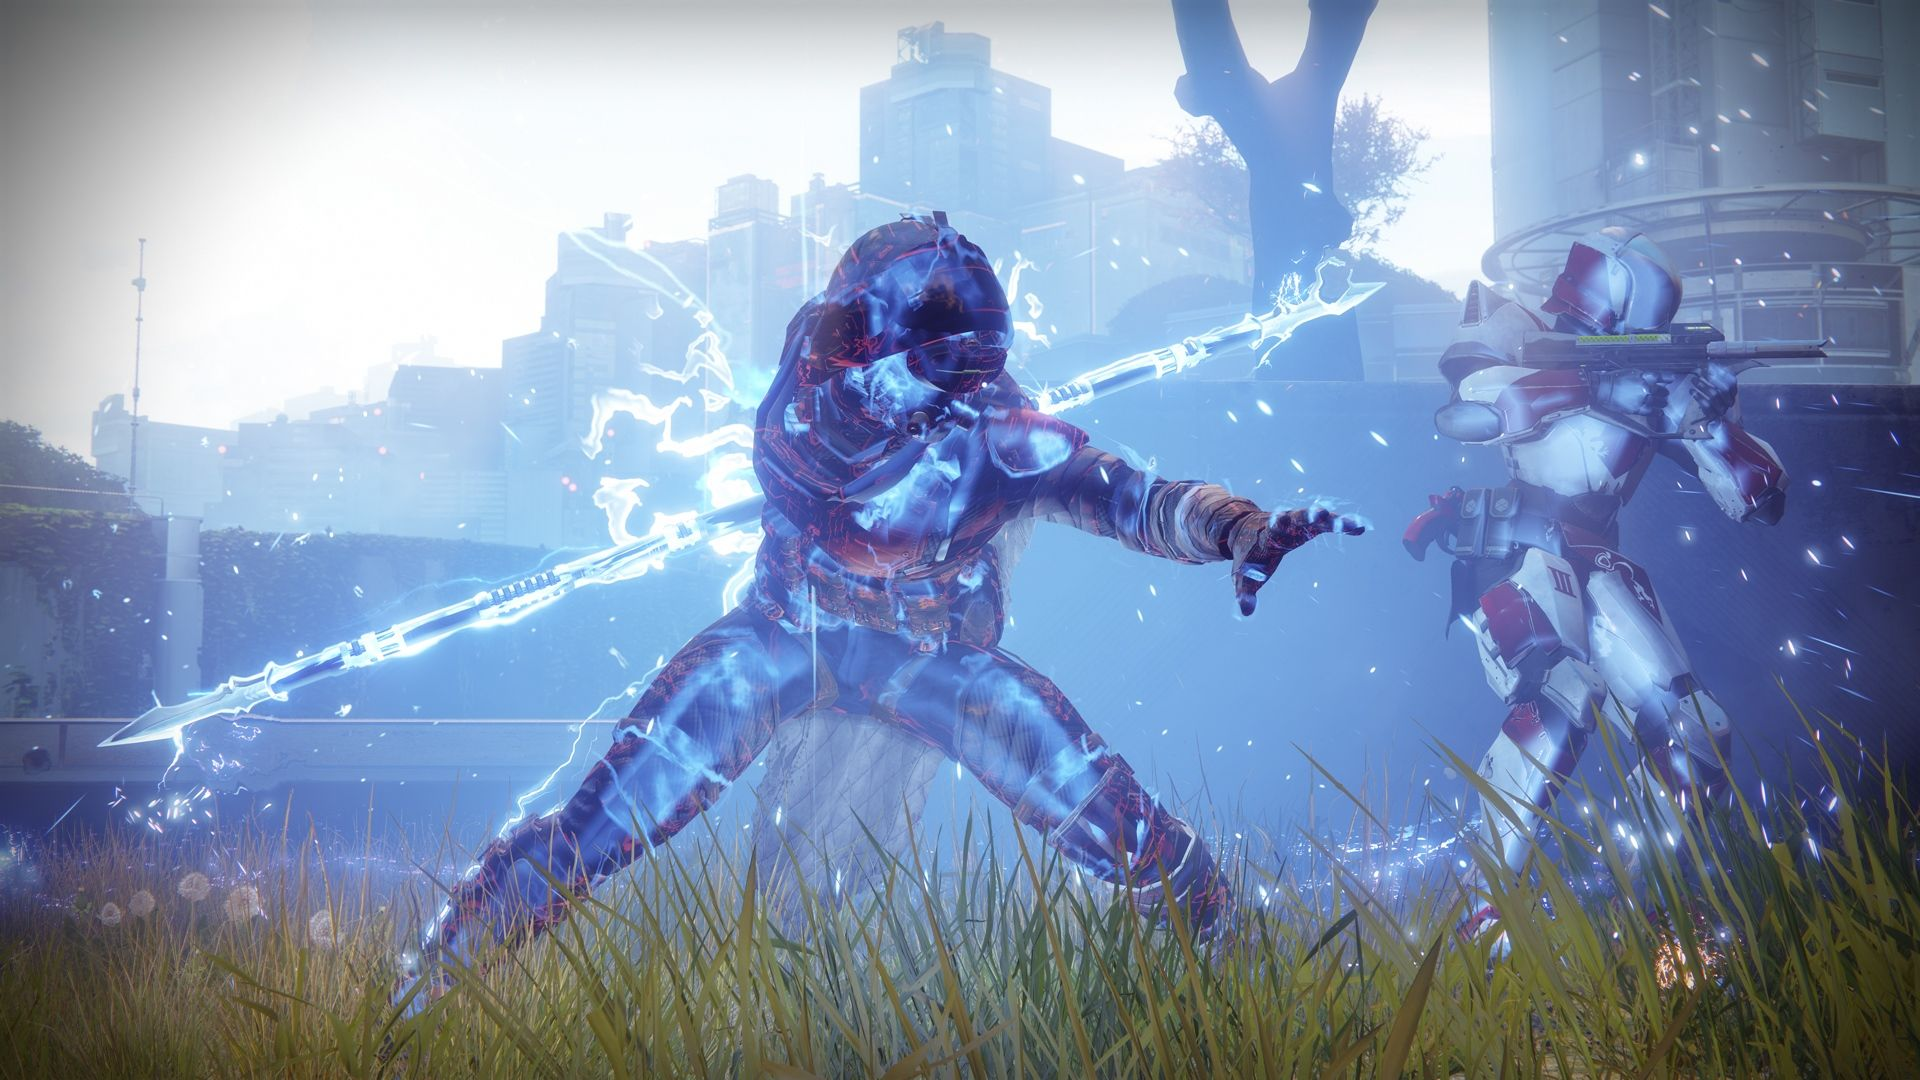 Destiny 2 1440p Wallpaper Posted By Sarah Simpson